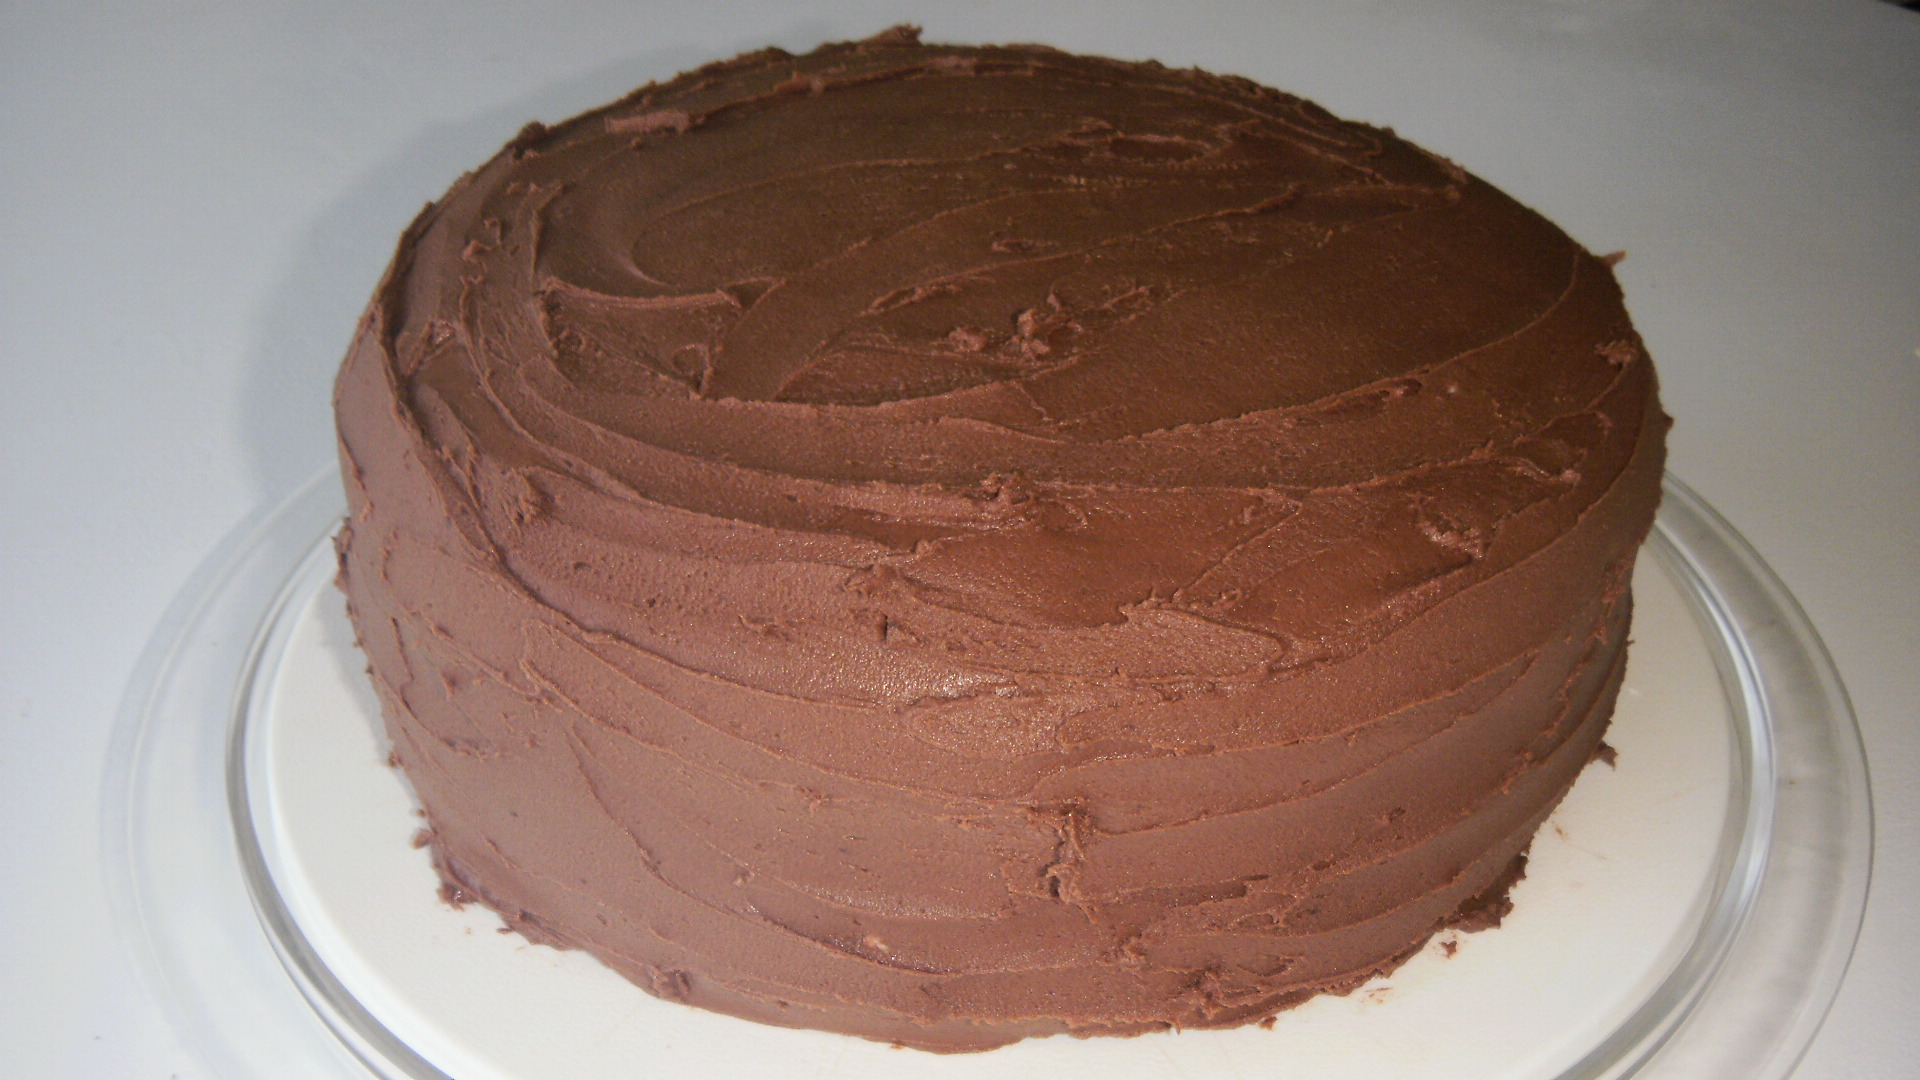 Images Of Cake With Icing : Dairy, Egg and Peanut/Tree Nut Free Chocolate Birthday ...